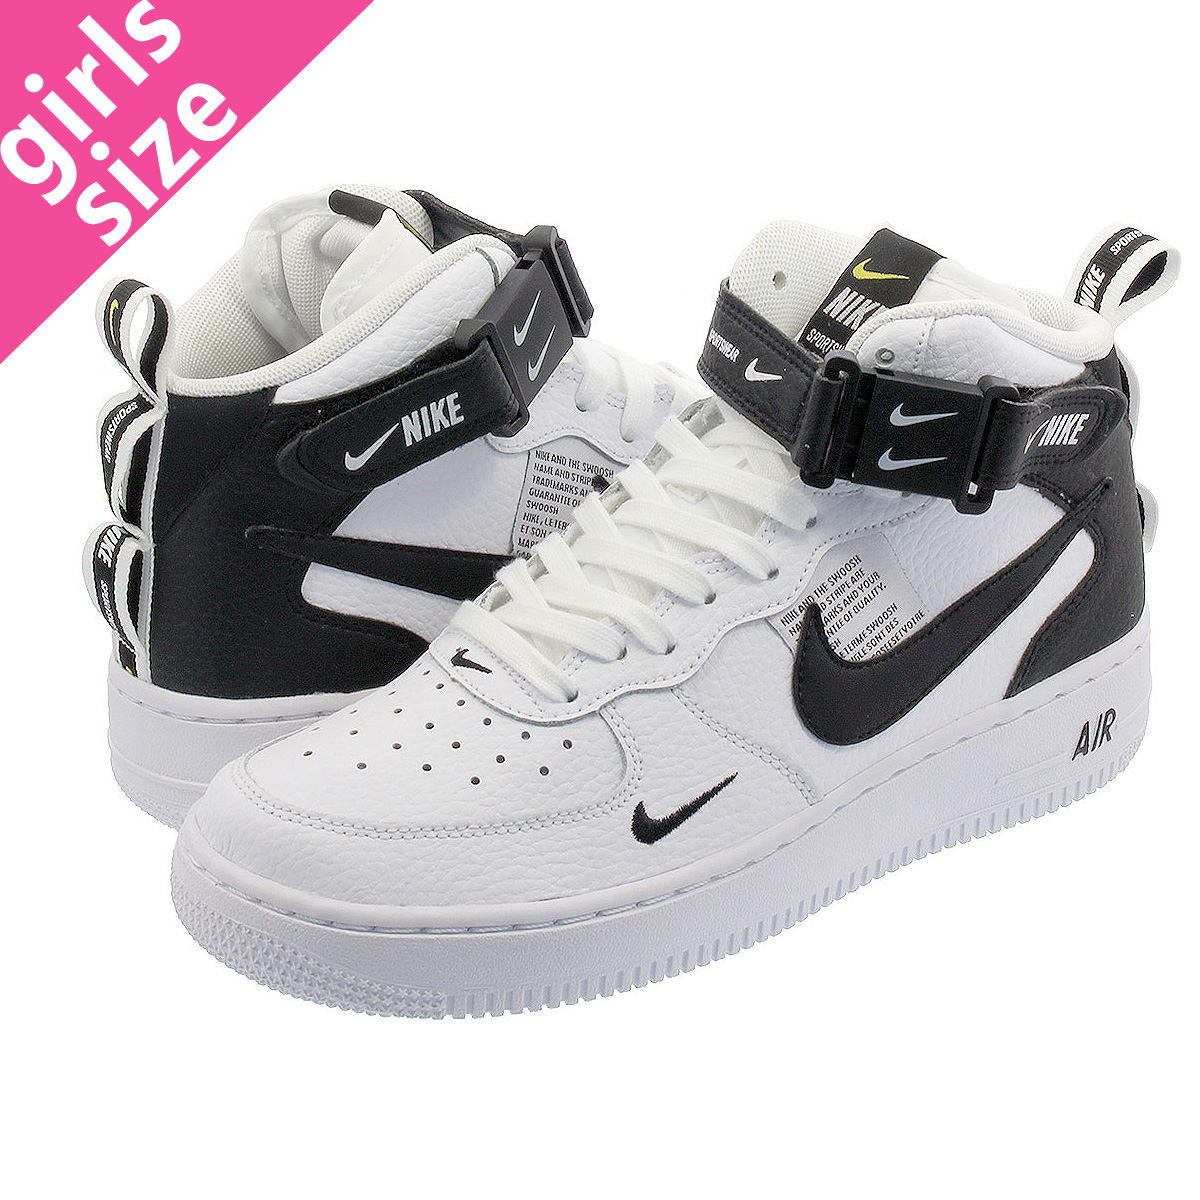 online store 1e980 12540 NIKE AIR FORCE 1 MID GS Nike air force 1 mid GS WHITE BLACK TOUR YELLOW  av3803-100